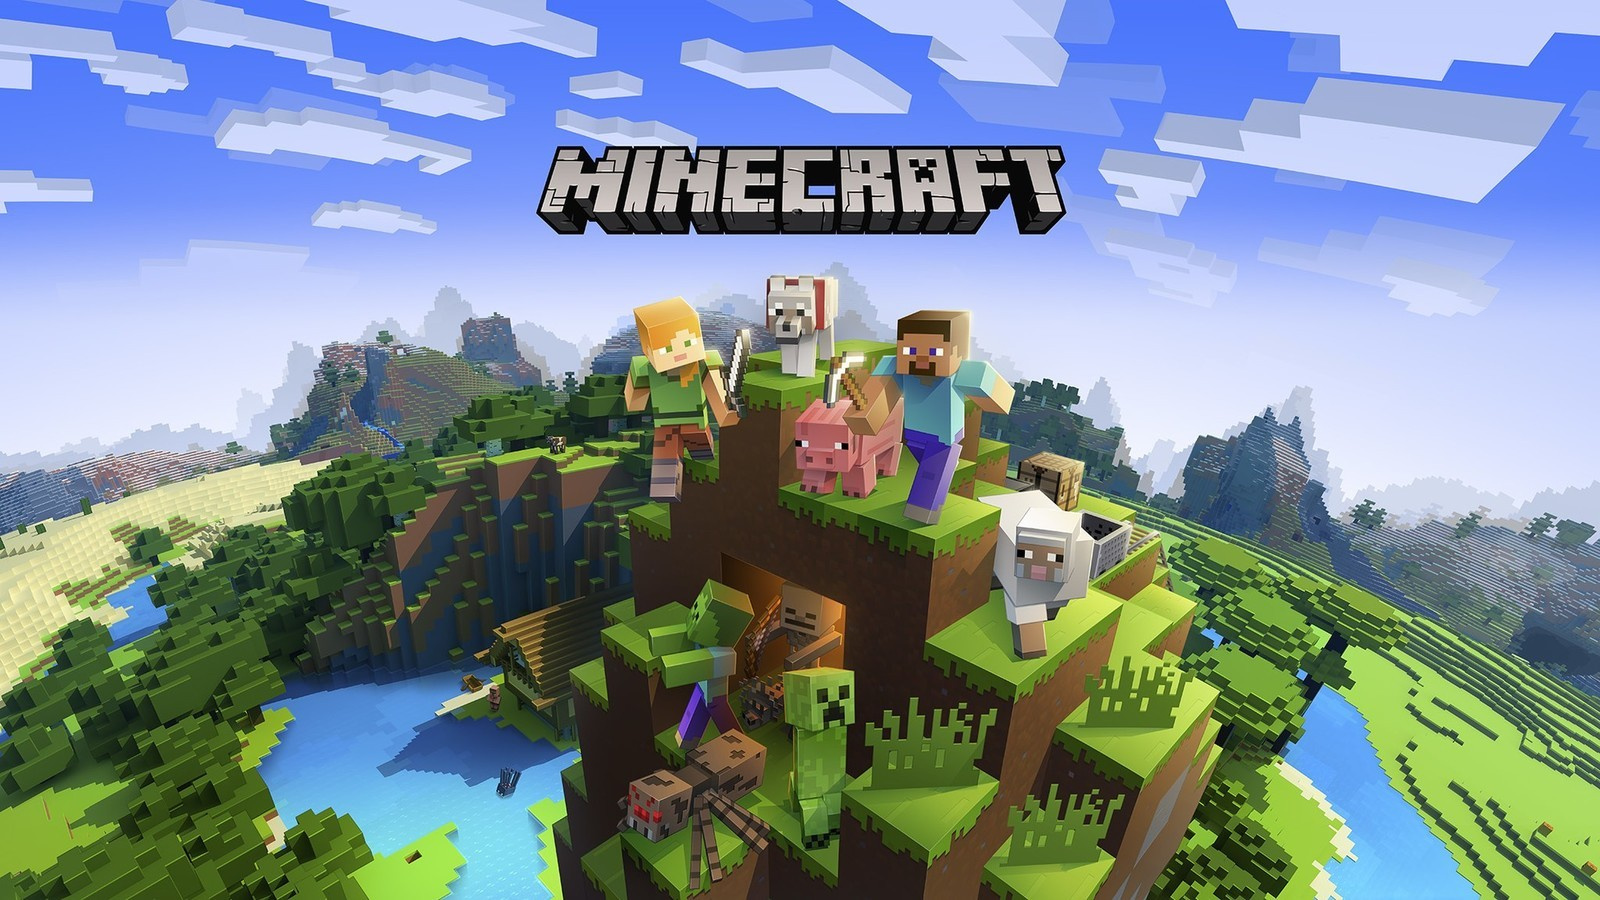 i bought minecraft but it says play demo ps4